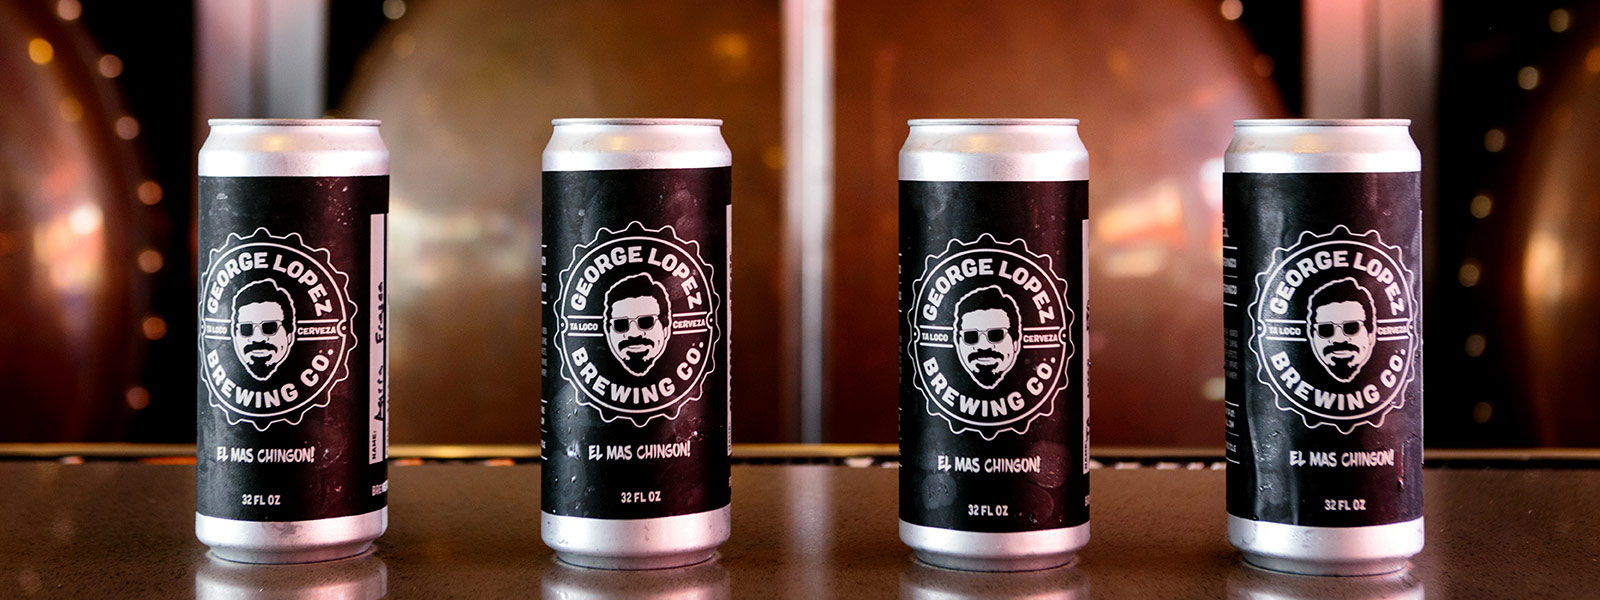 George Lopez Brewing Co. beer cans